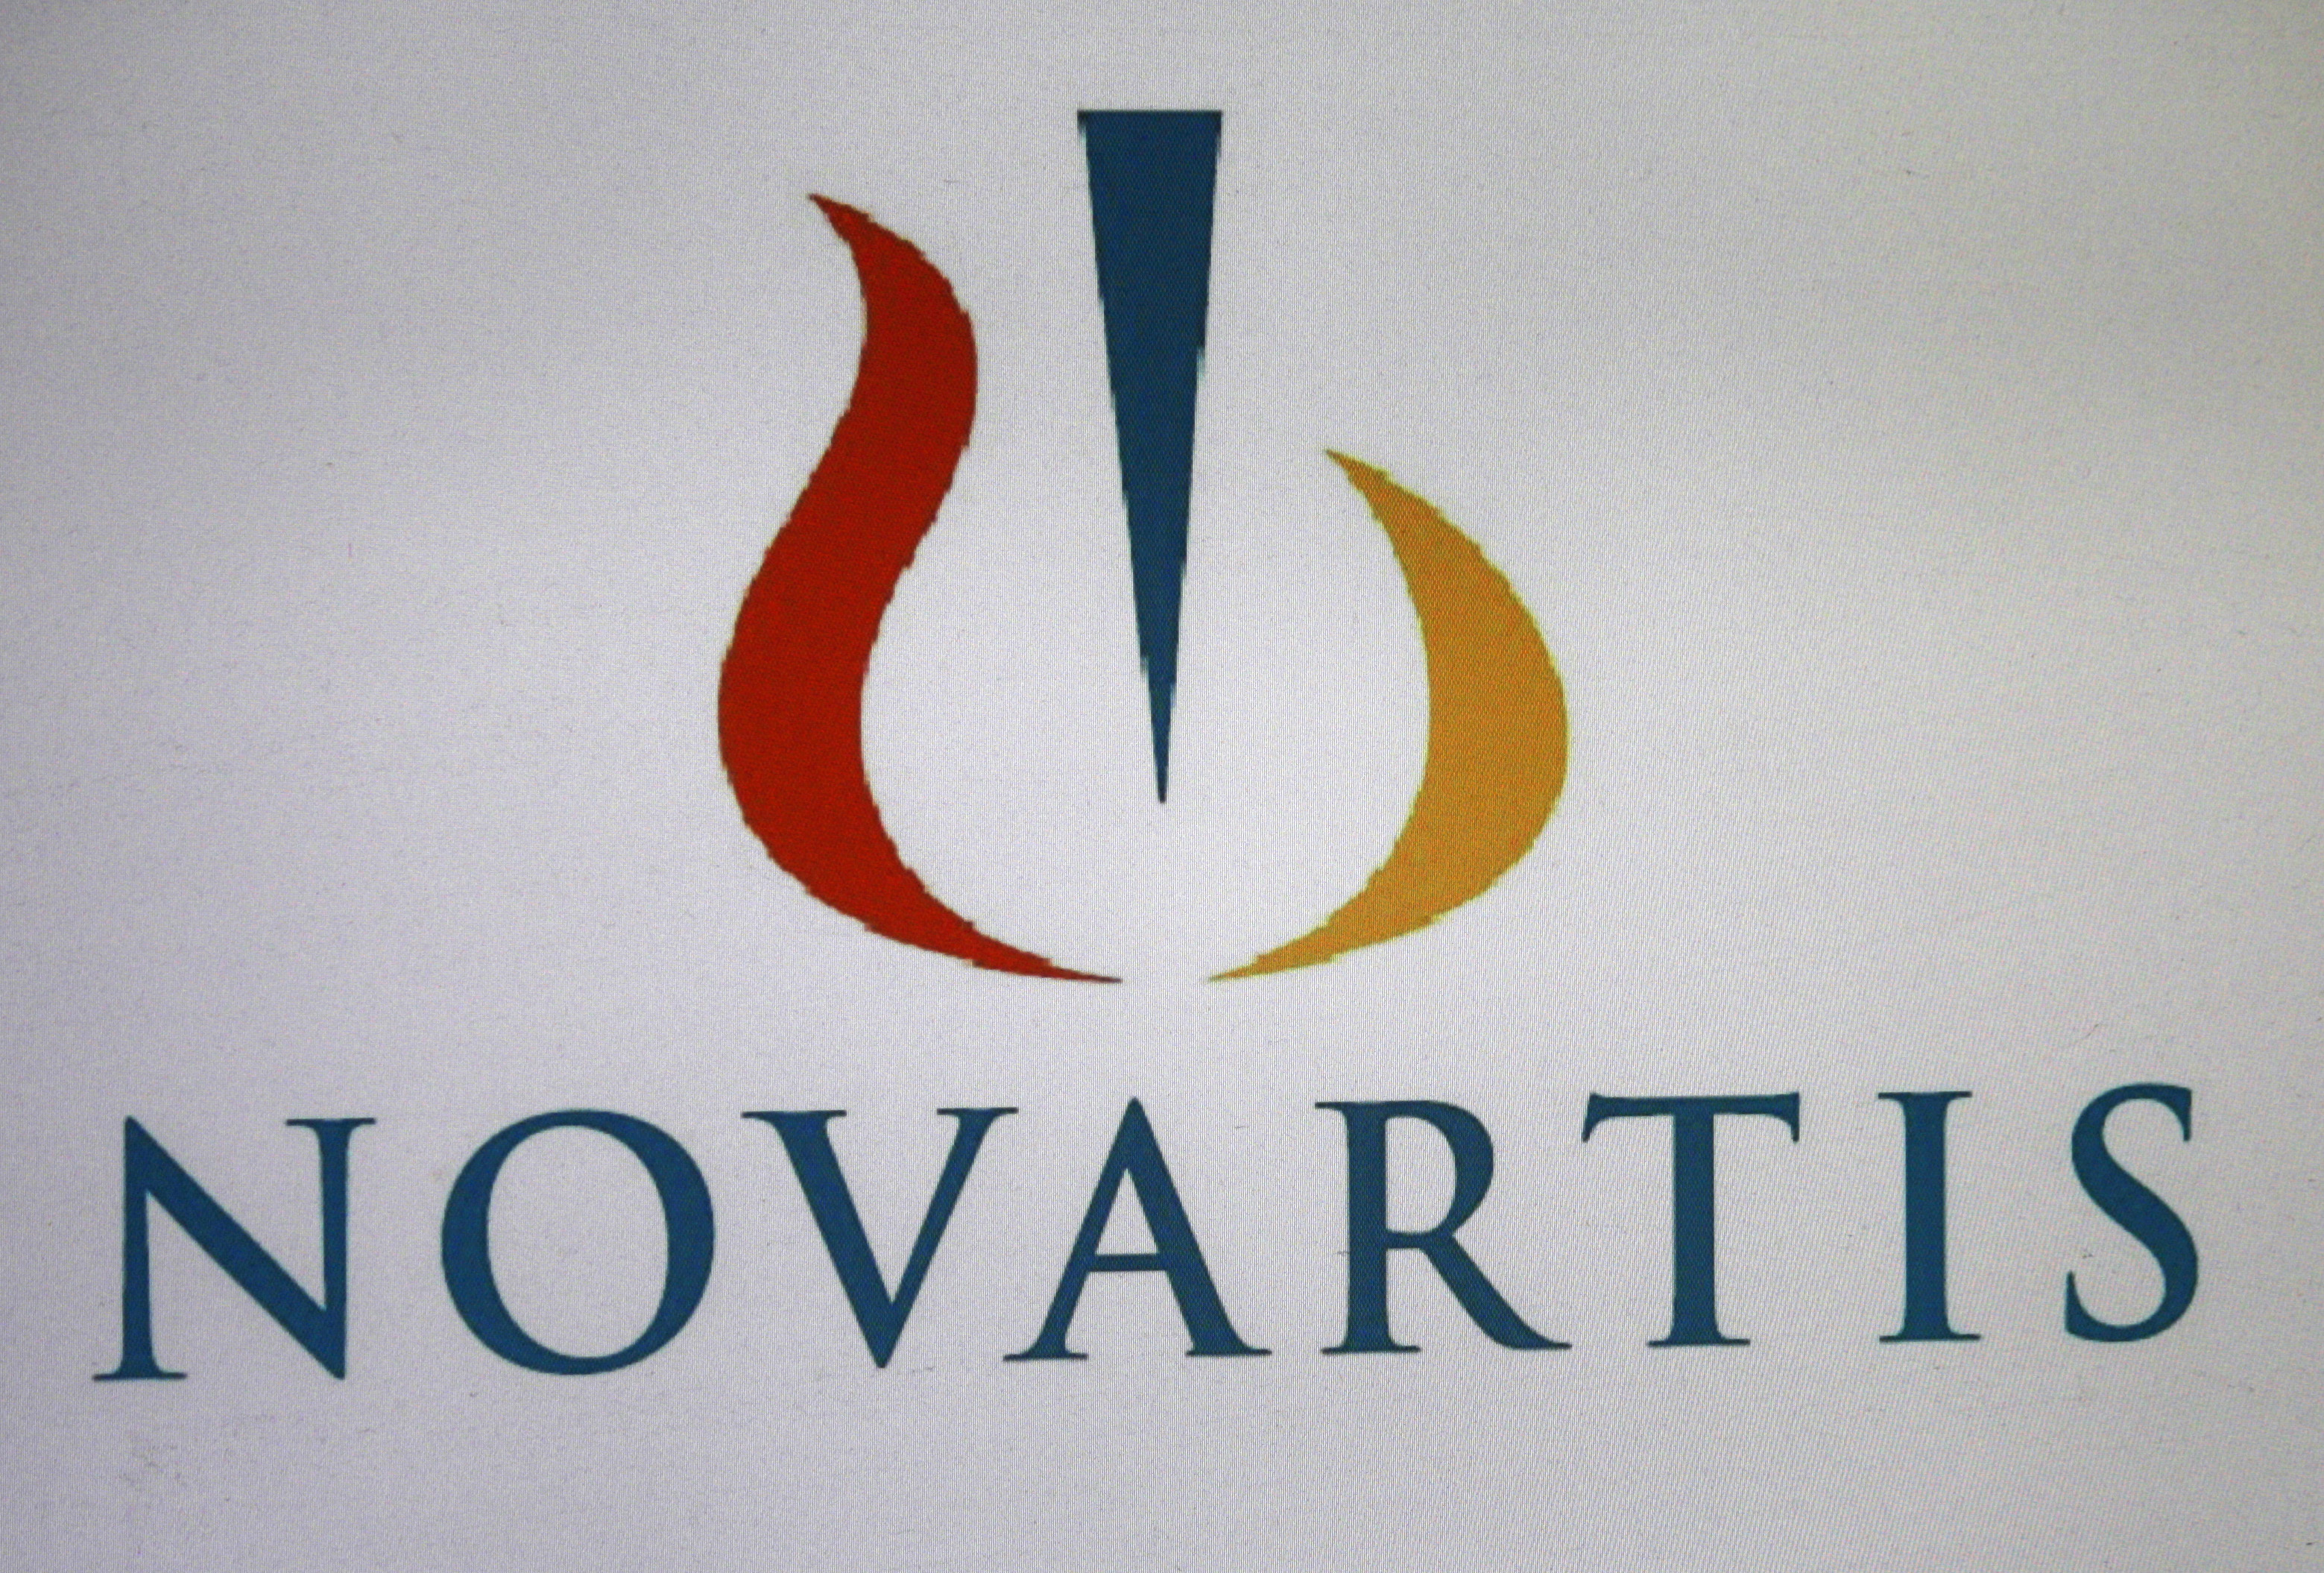 Novartis Announces Extended Progression-free Survival in Phase III Afinitor Trial For Advanced Lung Neuroendocrine Tumors